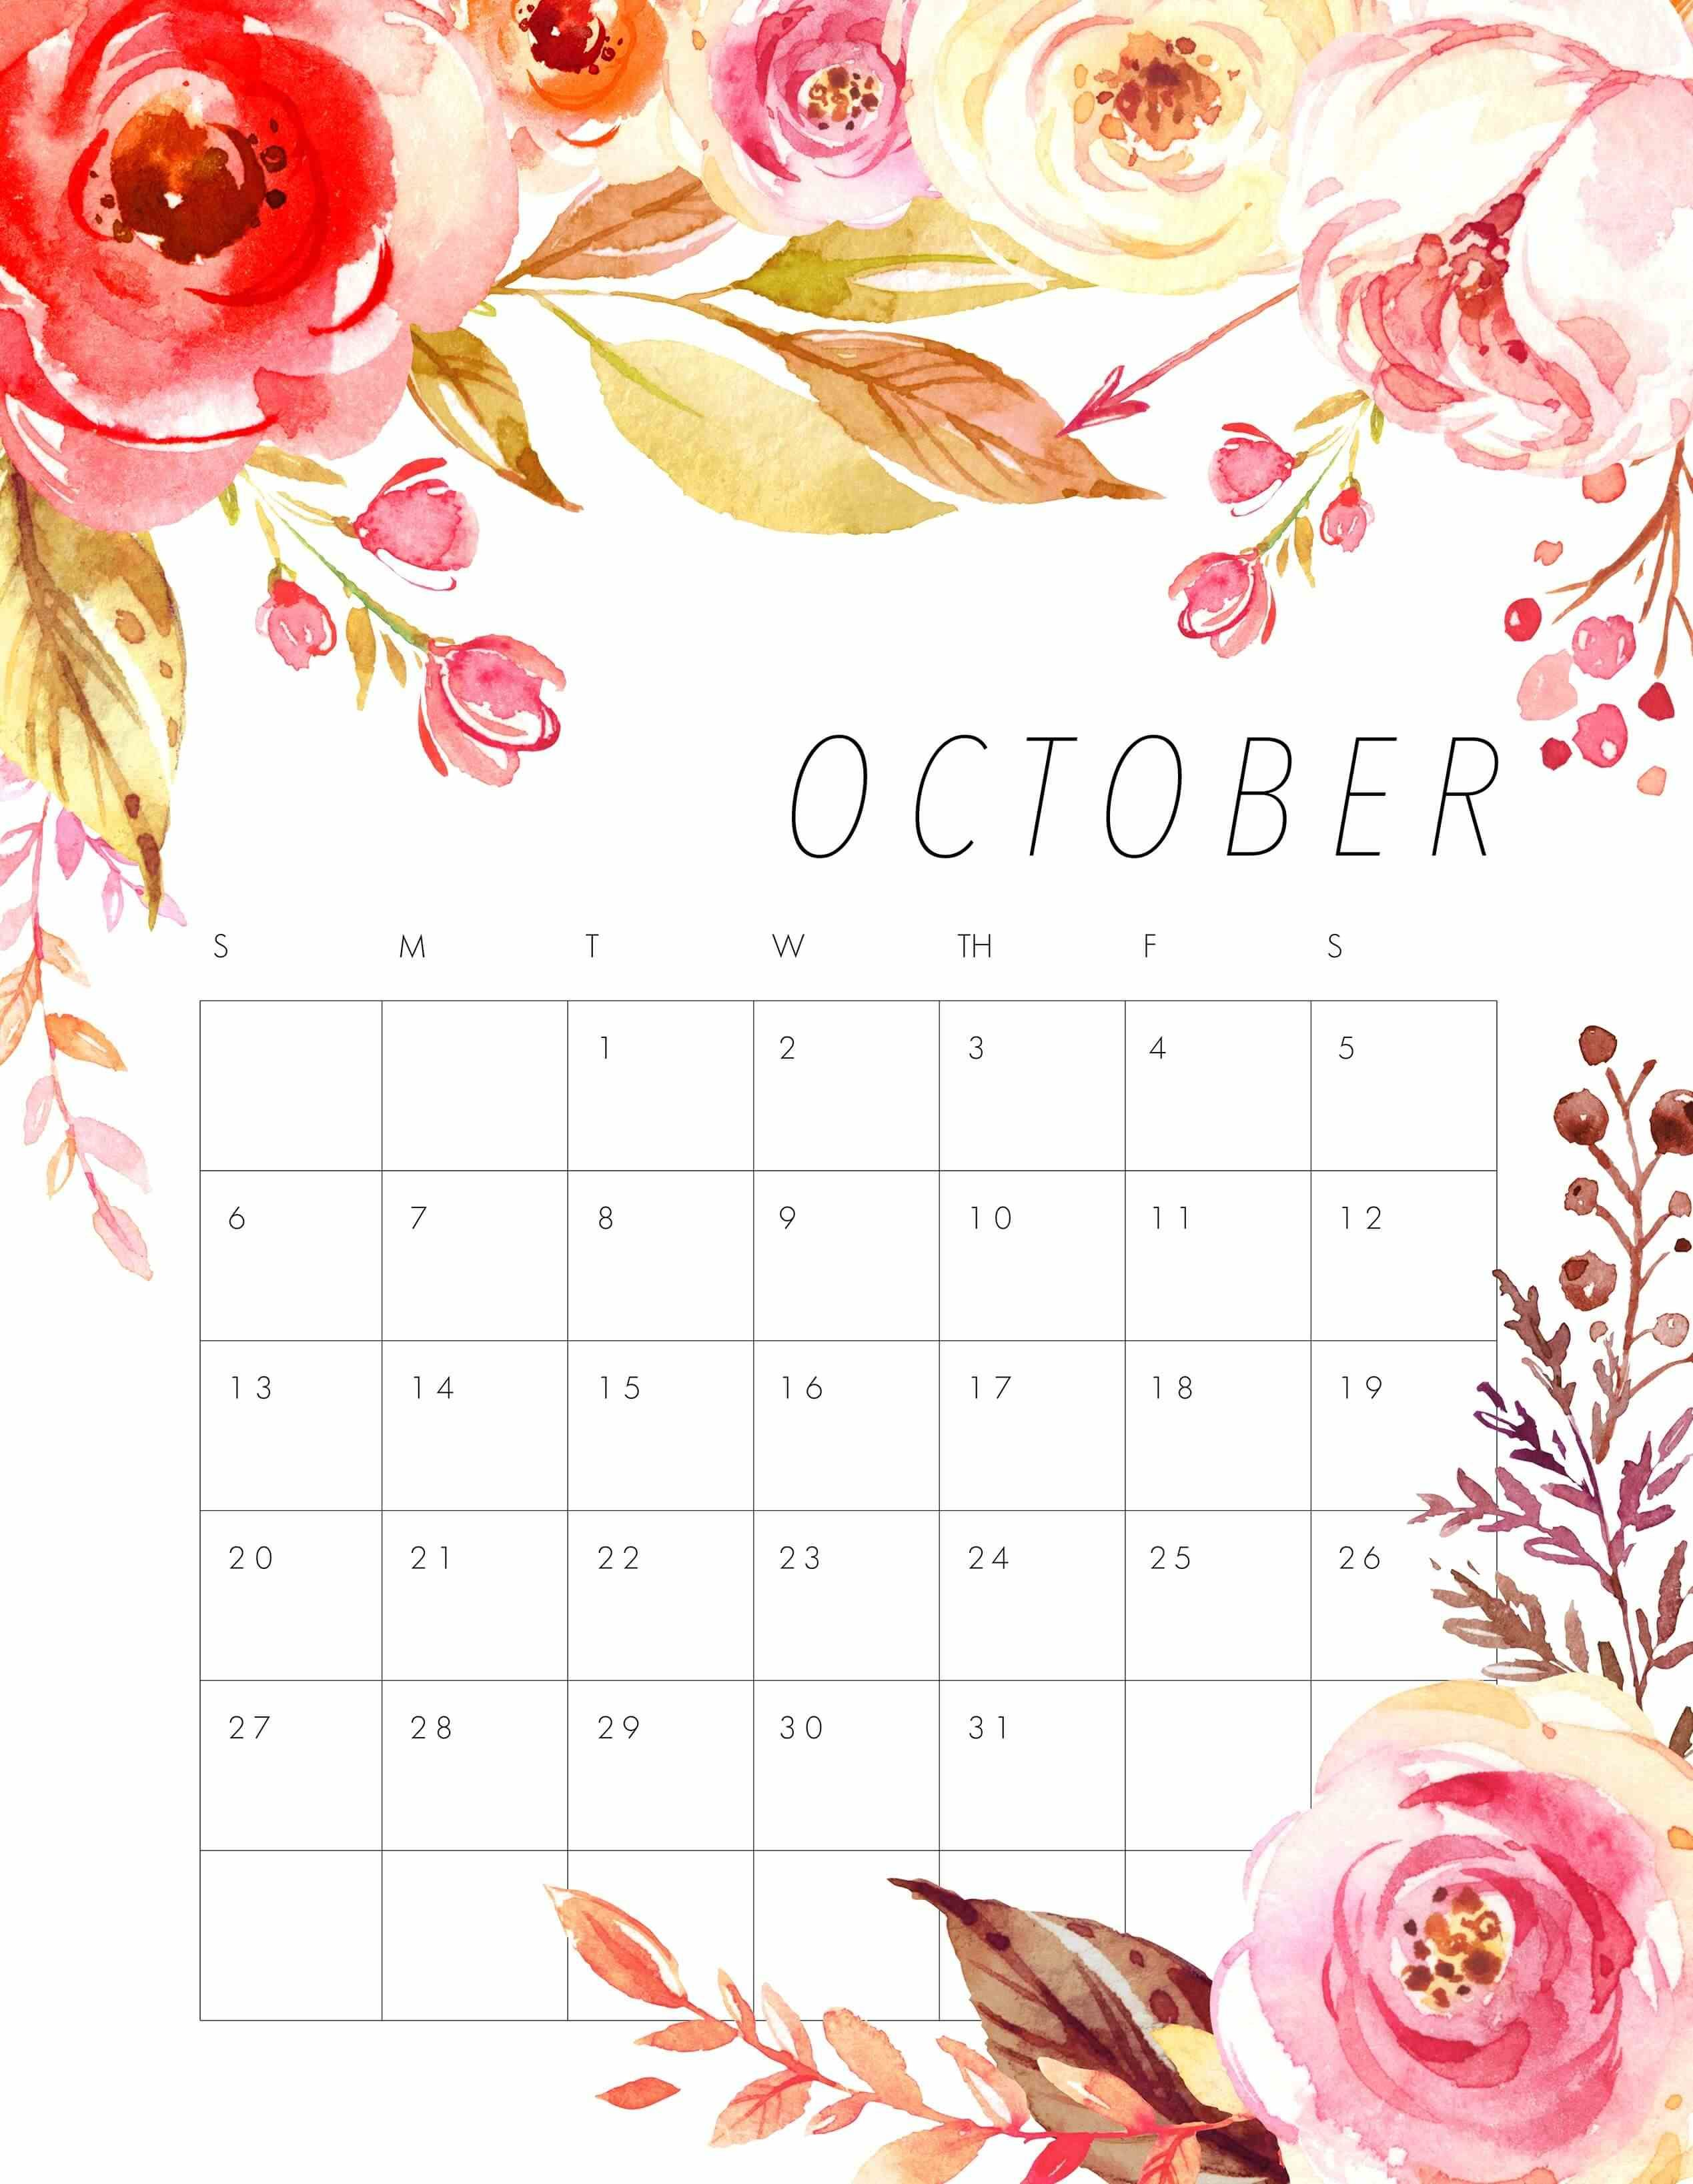 Cute October 2019 Calendar Printable Wallpapers Hd 2017 Floral